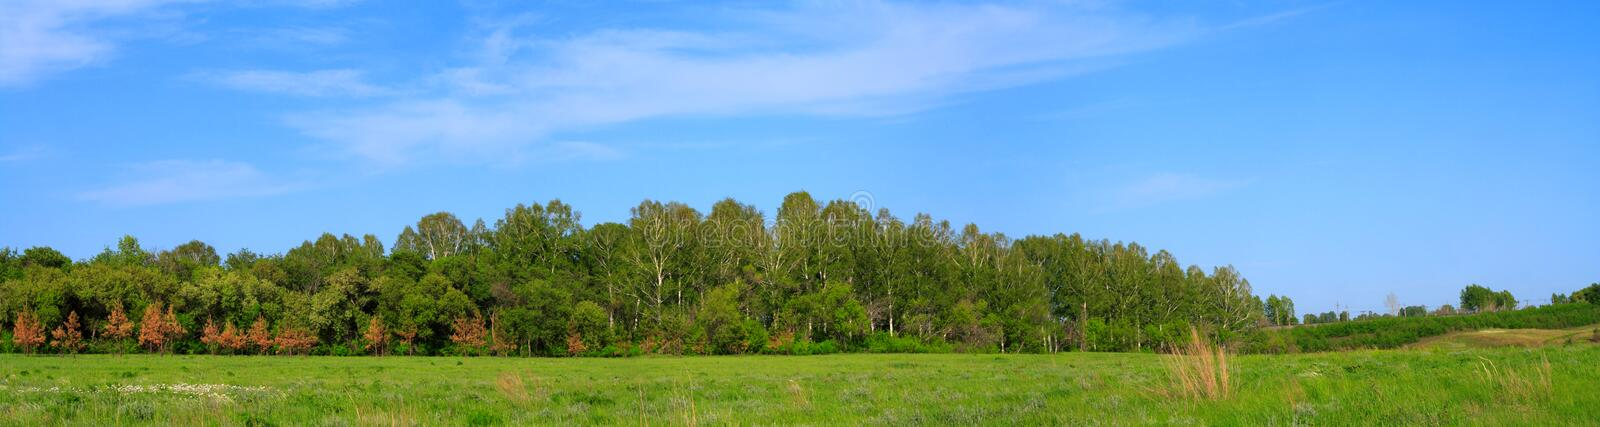 Panorama of a field before a wood stock images